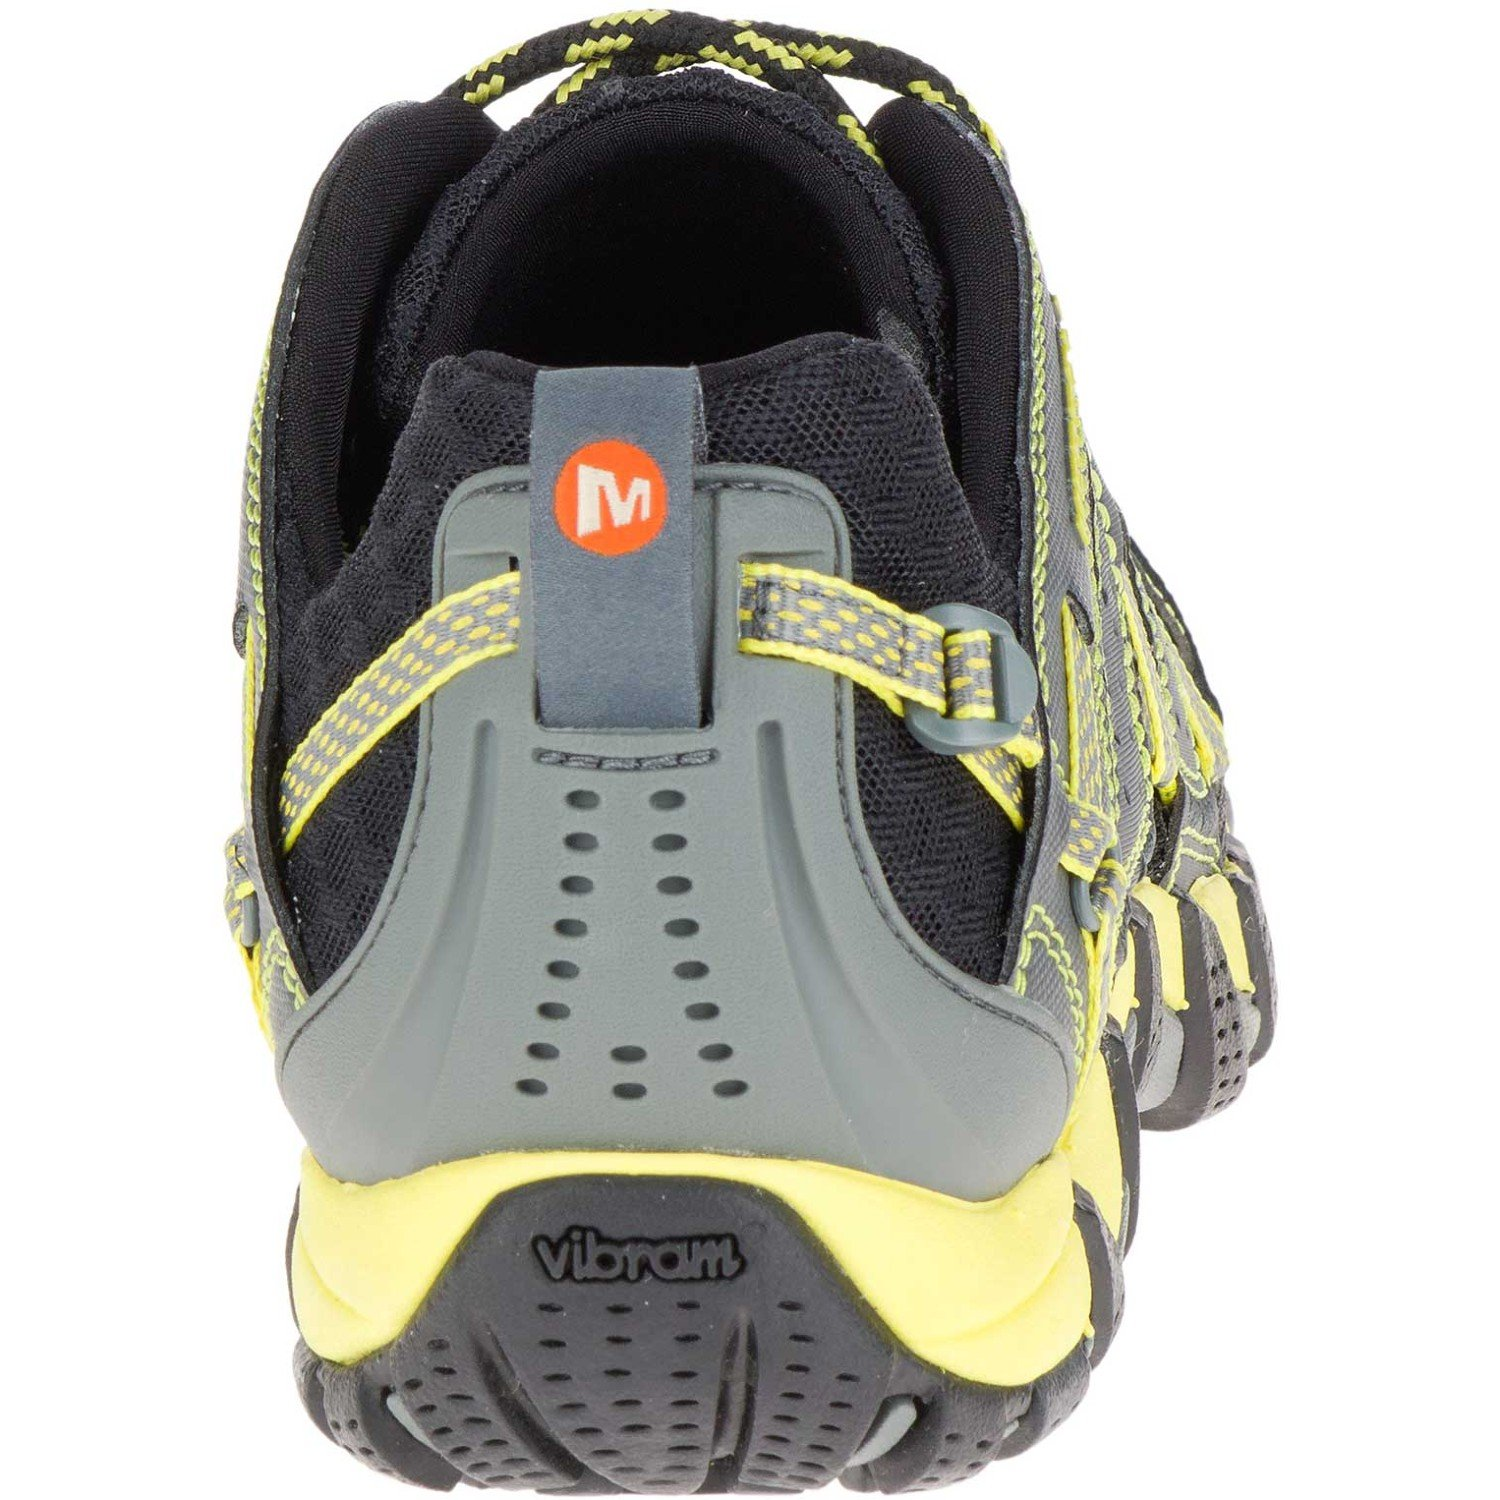 Merrell Waterpro Maipo Watersport Shoes 7 D(M) US Black by Merrell (Image #4)